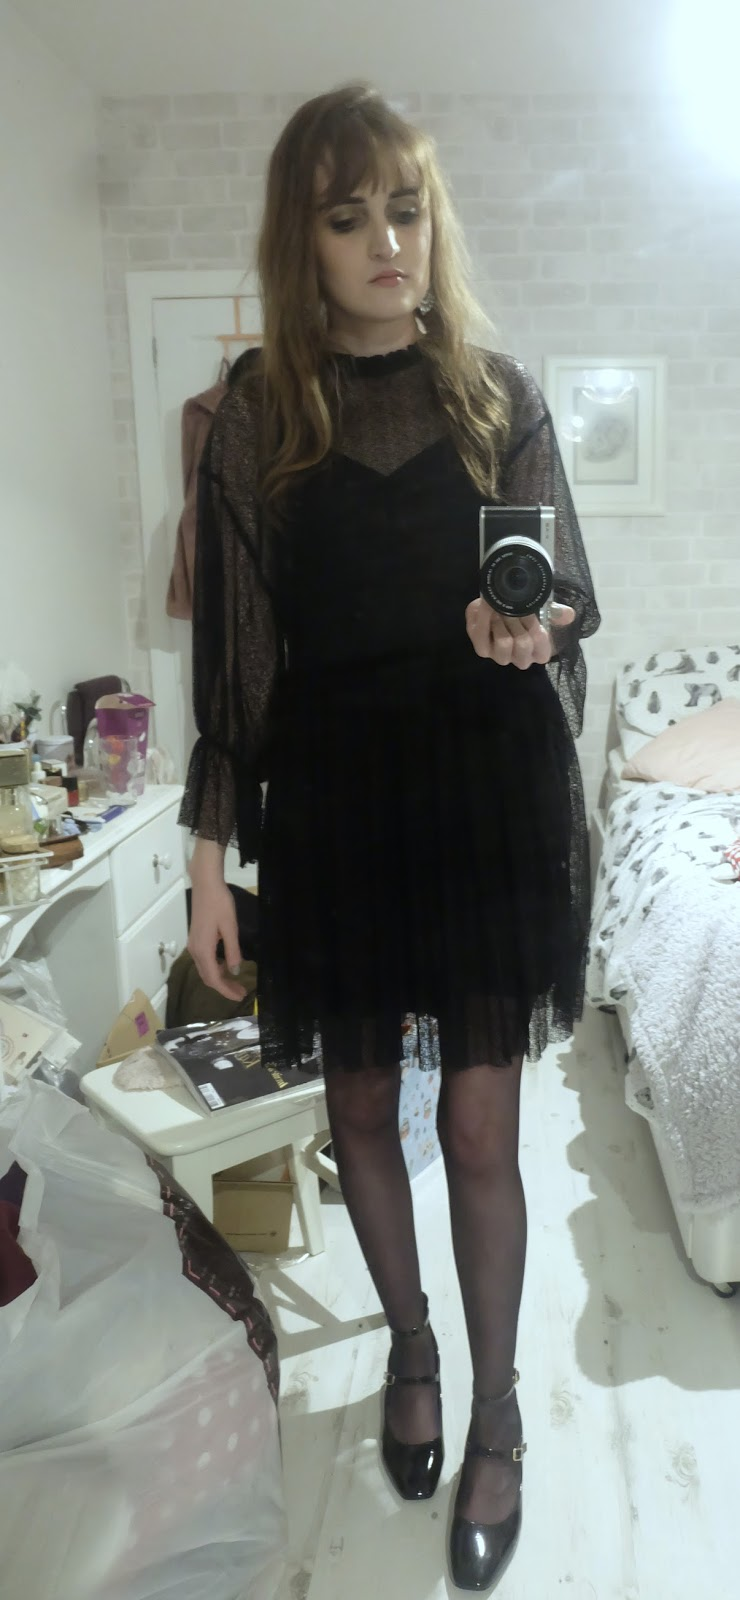 raid alexus shoes, h&m sparkly earrings, zara black lace dress, new year's eve outfit